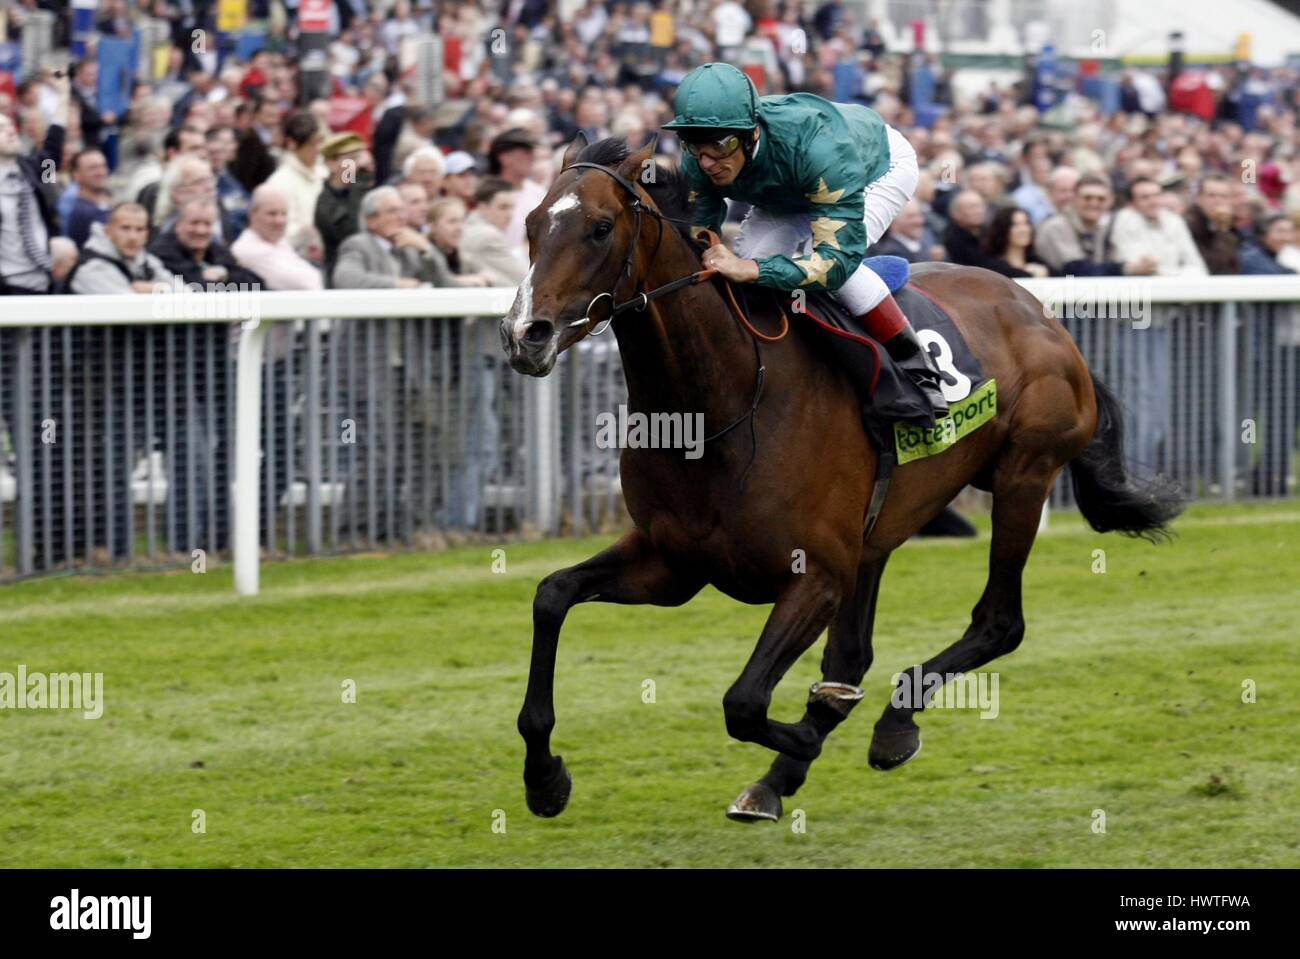 AUTHORIZED RIDDEN BY L DETTORI THE KNAVESMIRE YORK RACECORSE ENGLAND 17 May 2007 - Stock Image